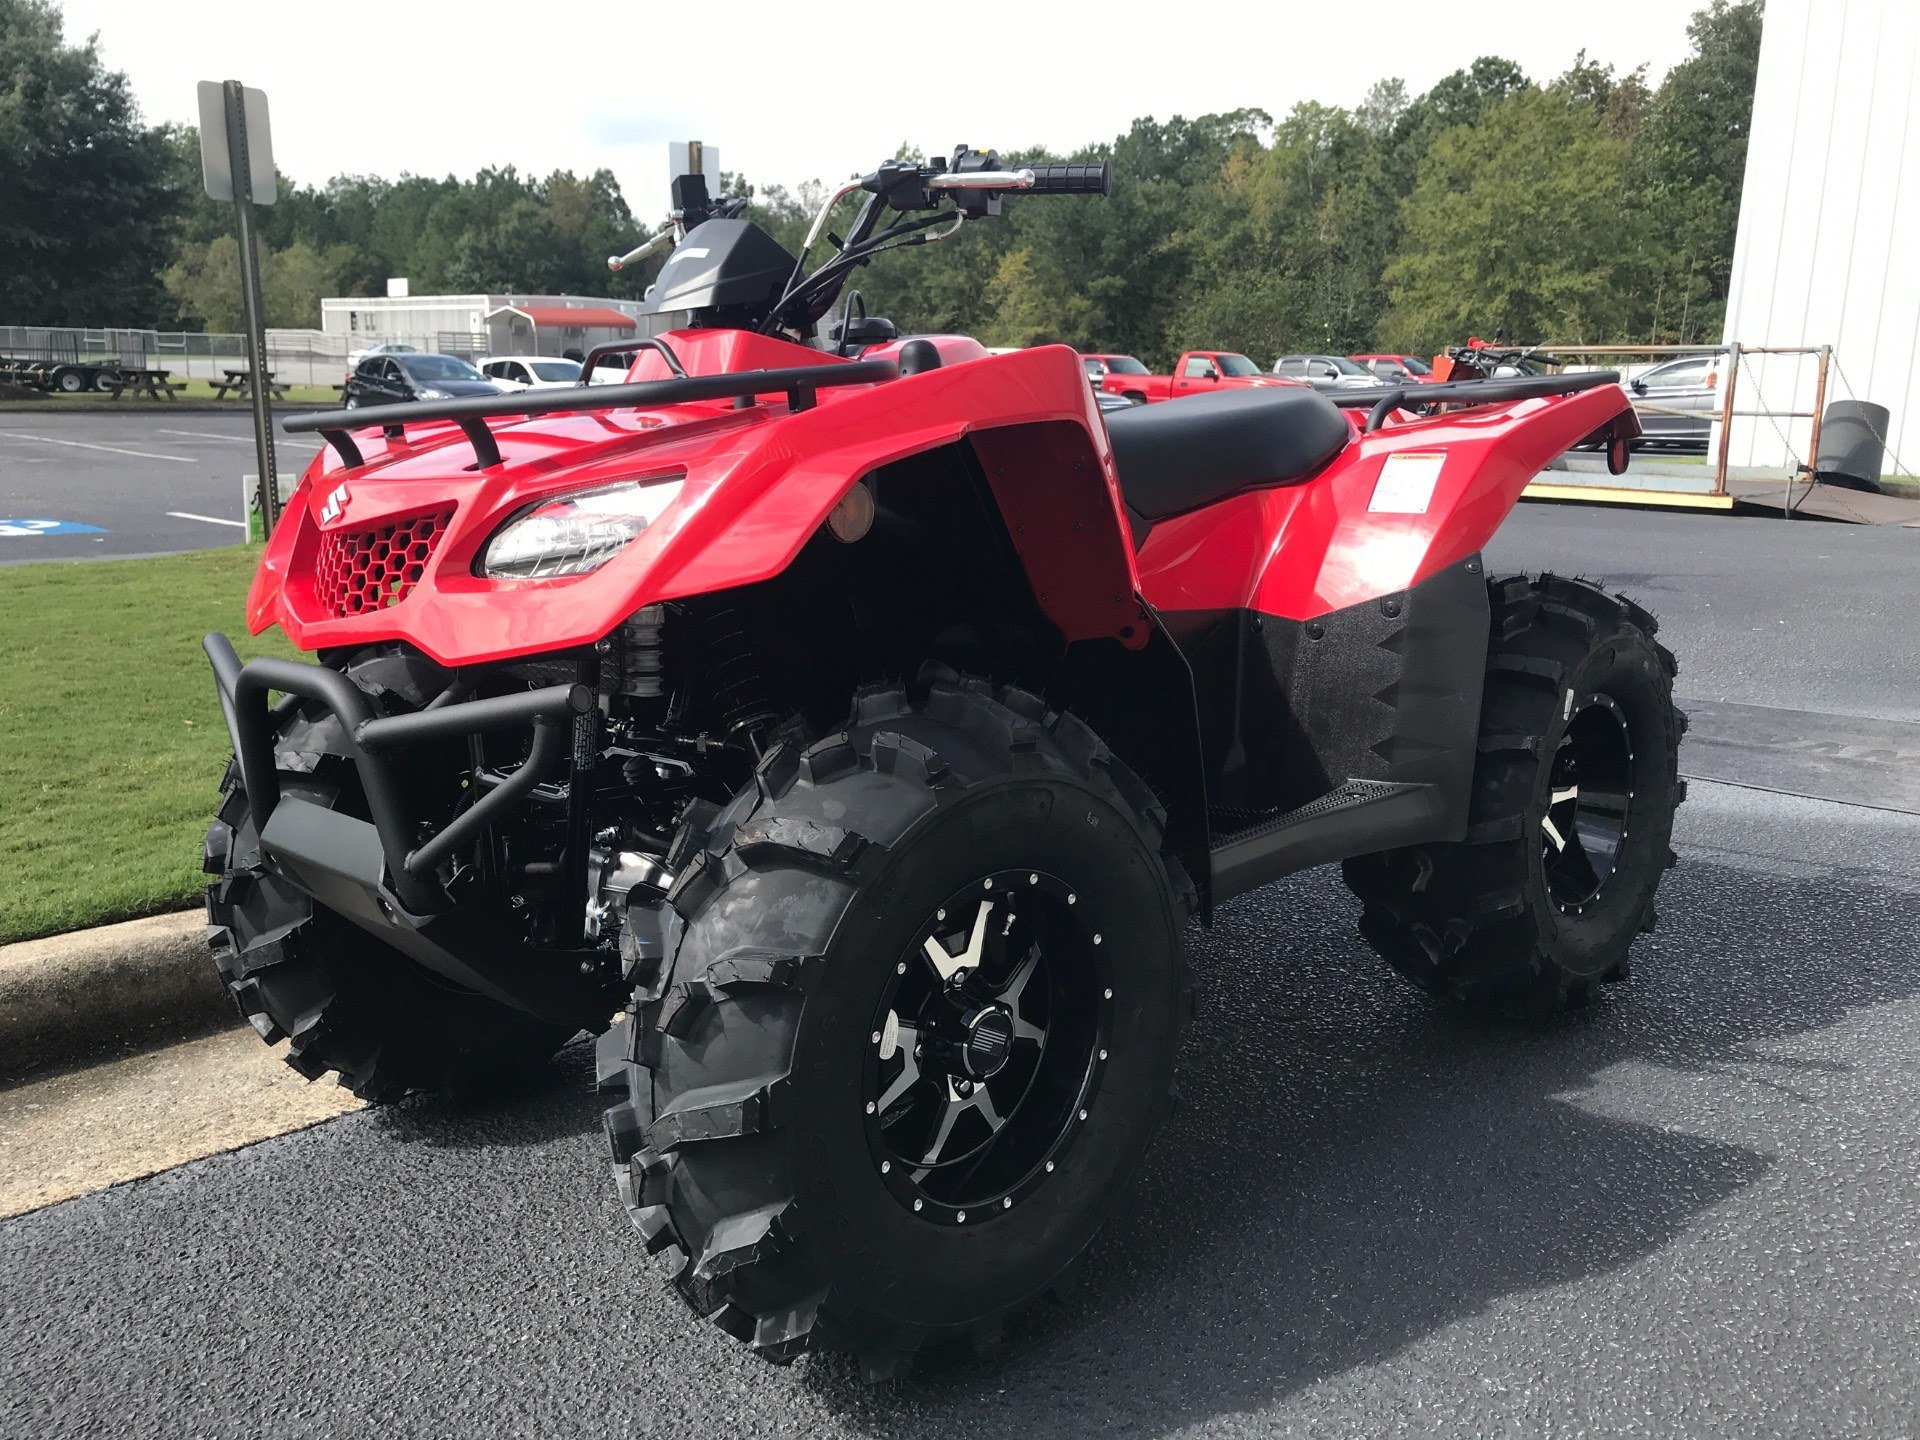 2021 Suzuki KingQuad 400ASi in Greenville, North Carolina - Photo 4